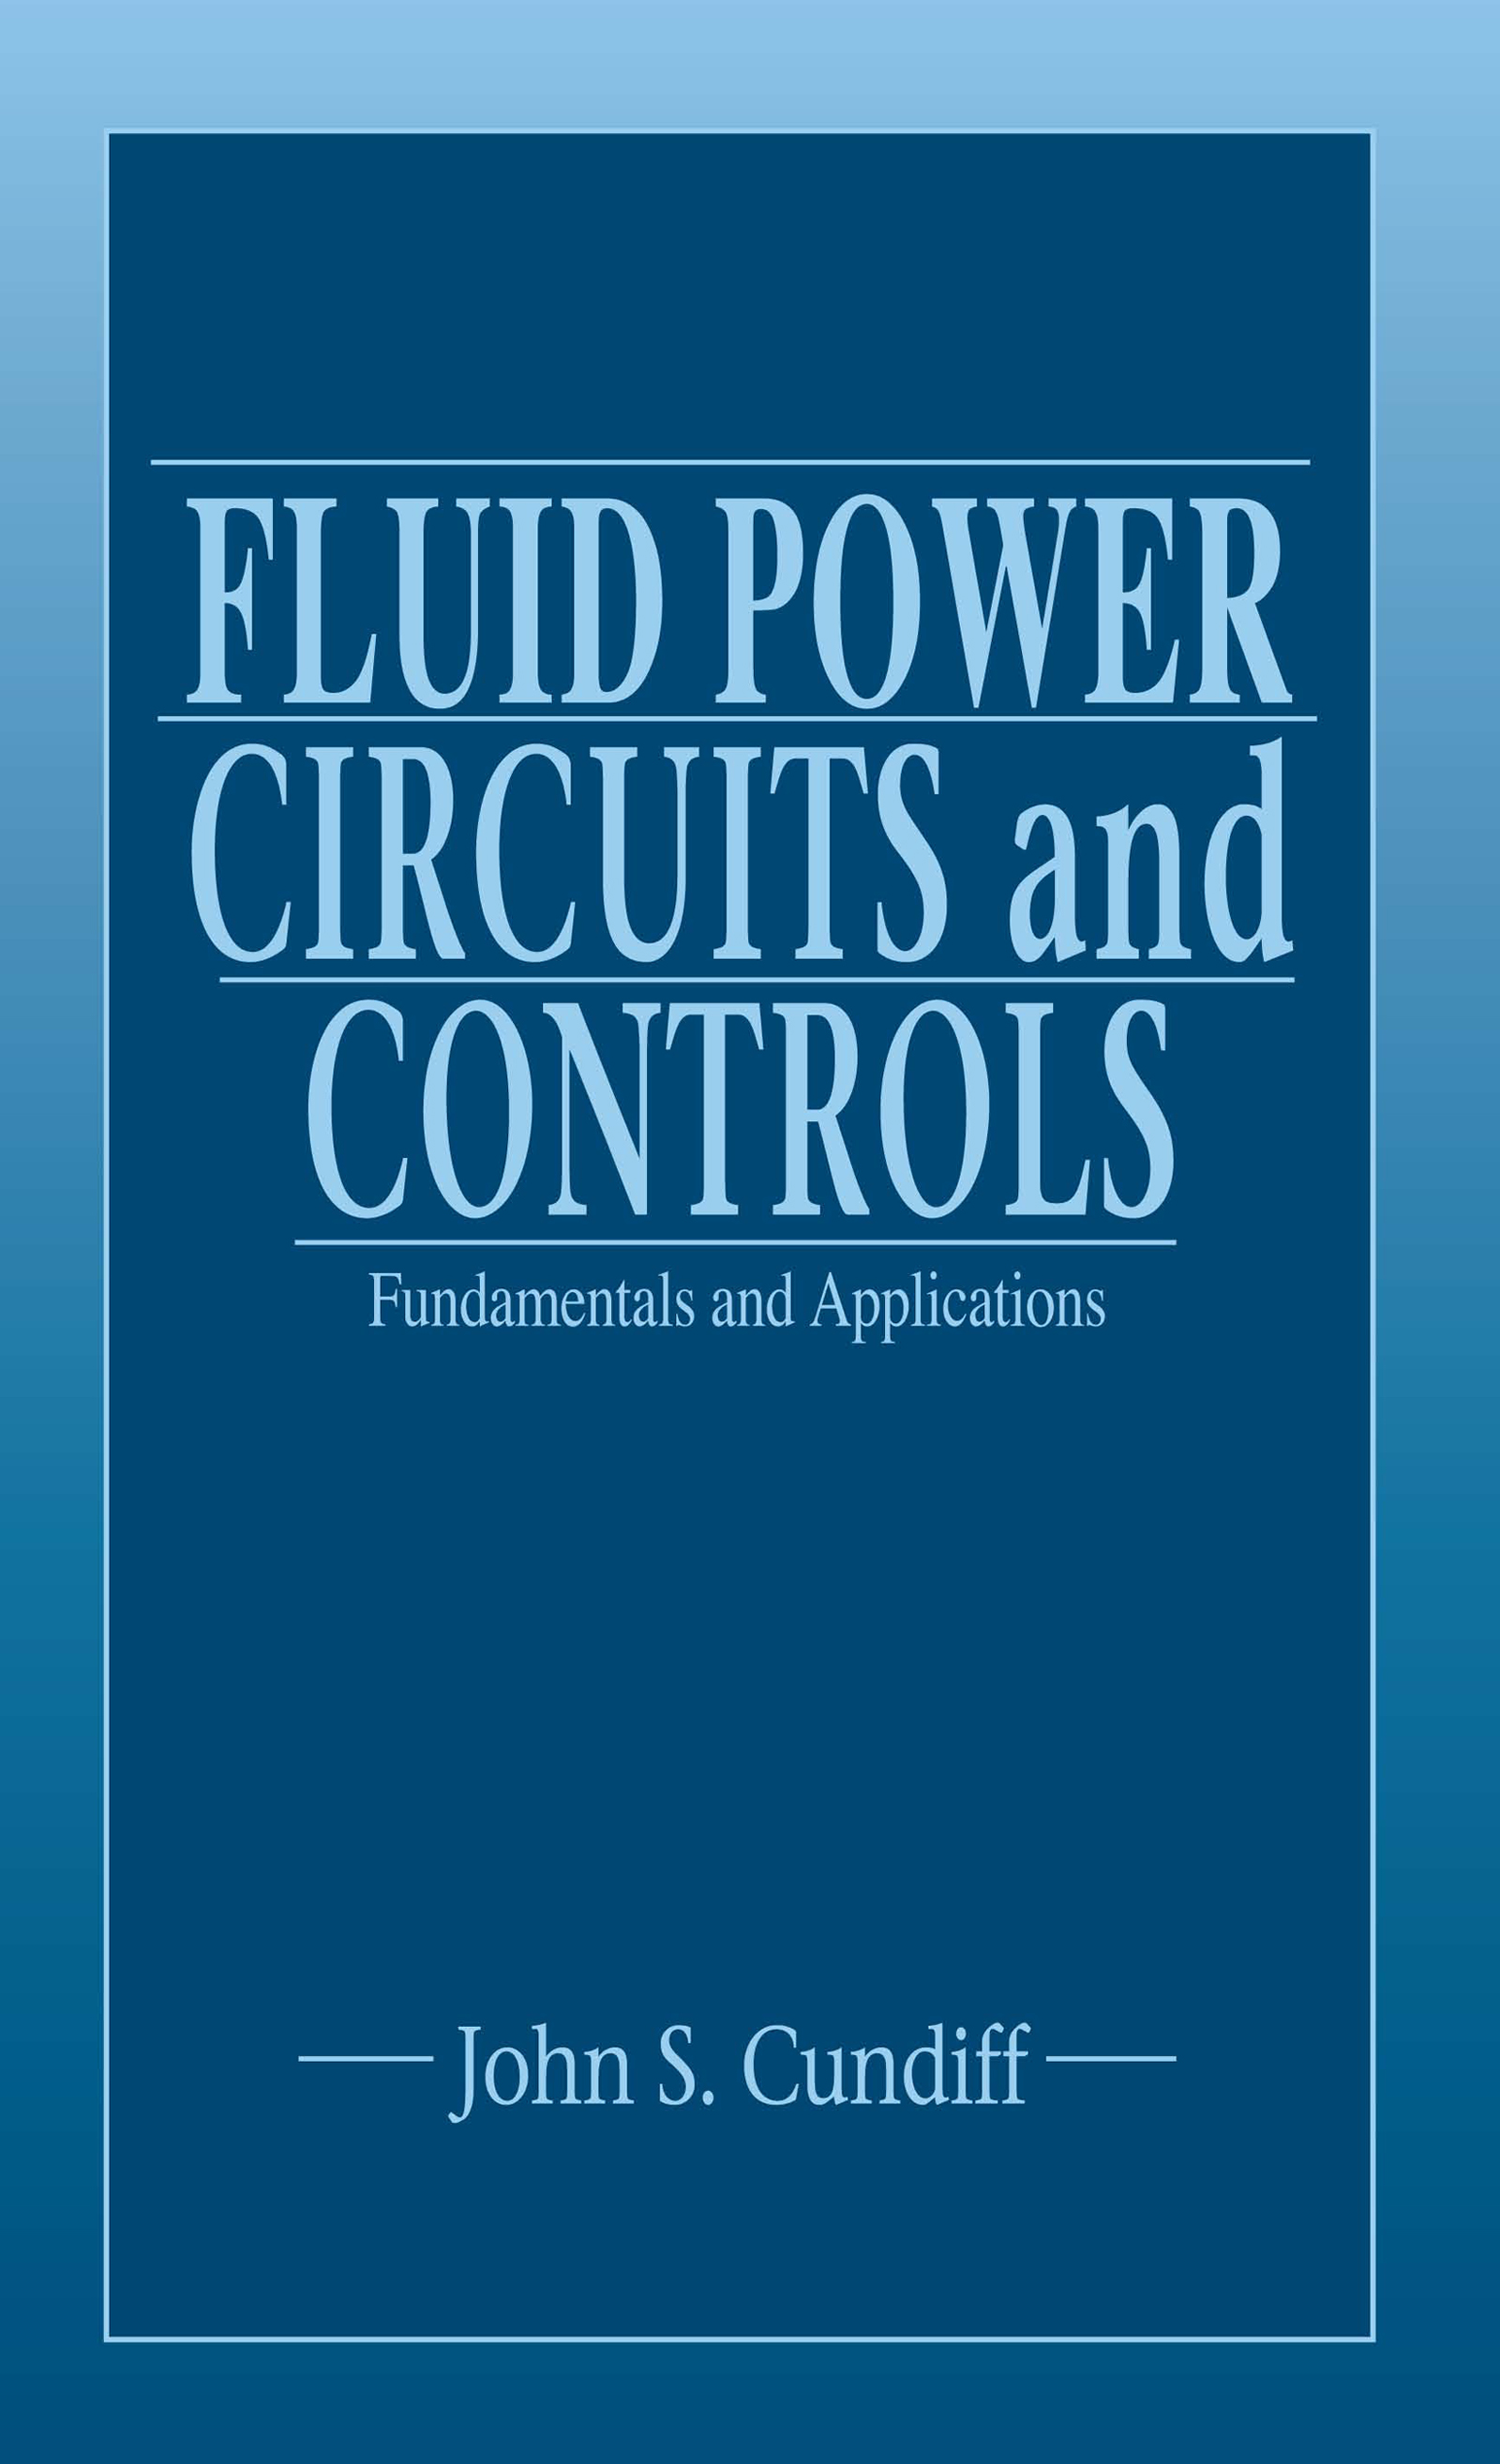 fluid power essays Fluid power is a system that is used in many endeavors of human advancement today the idea is focused upon the development of procedures on utilizing fluid power to allow fluid such as oil to.